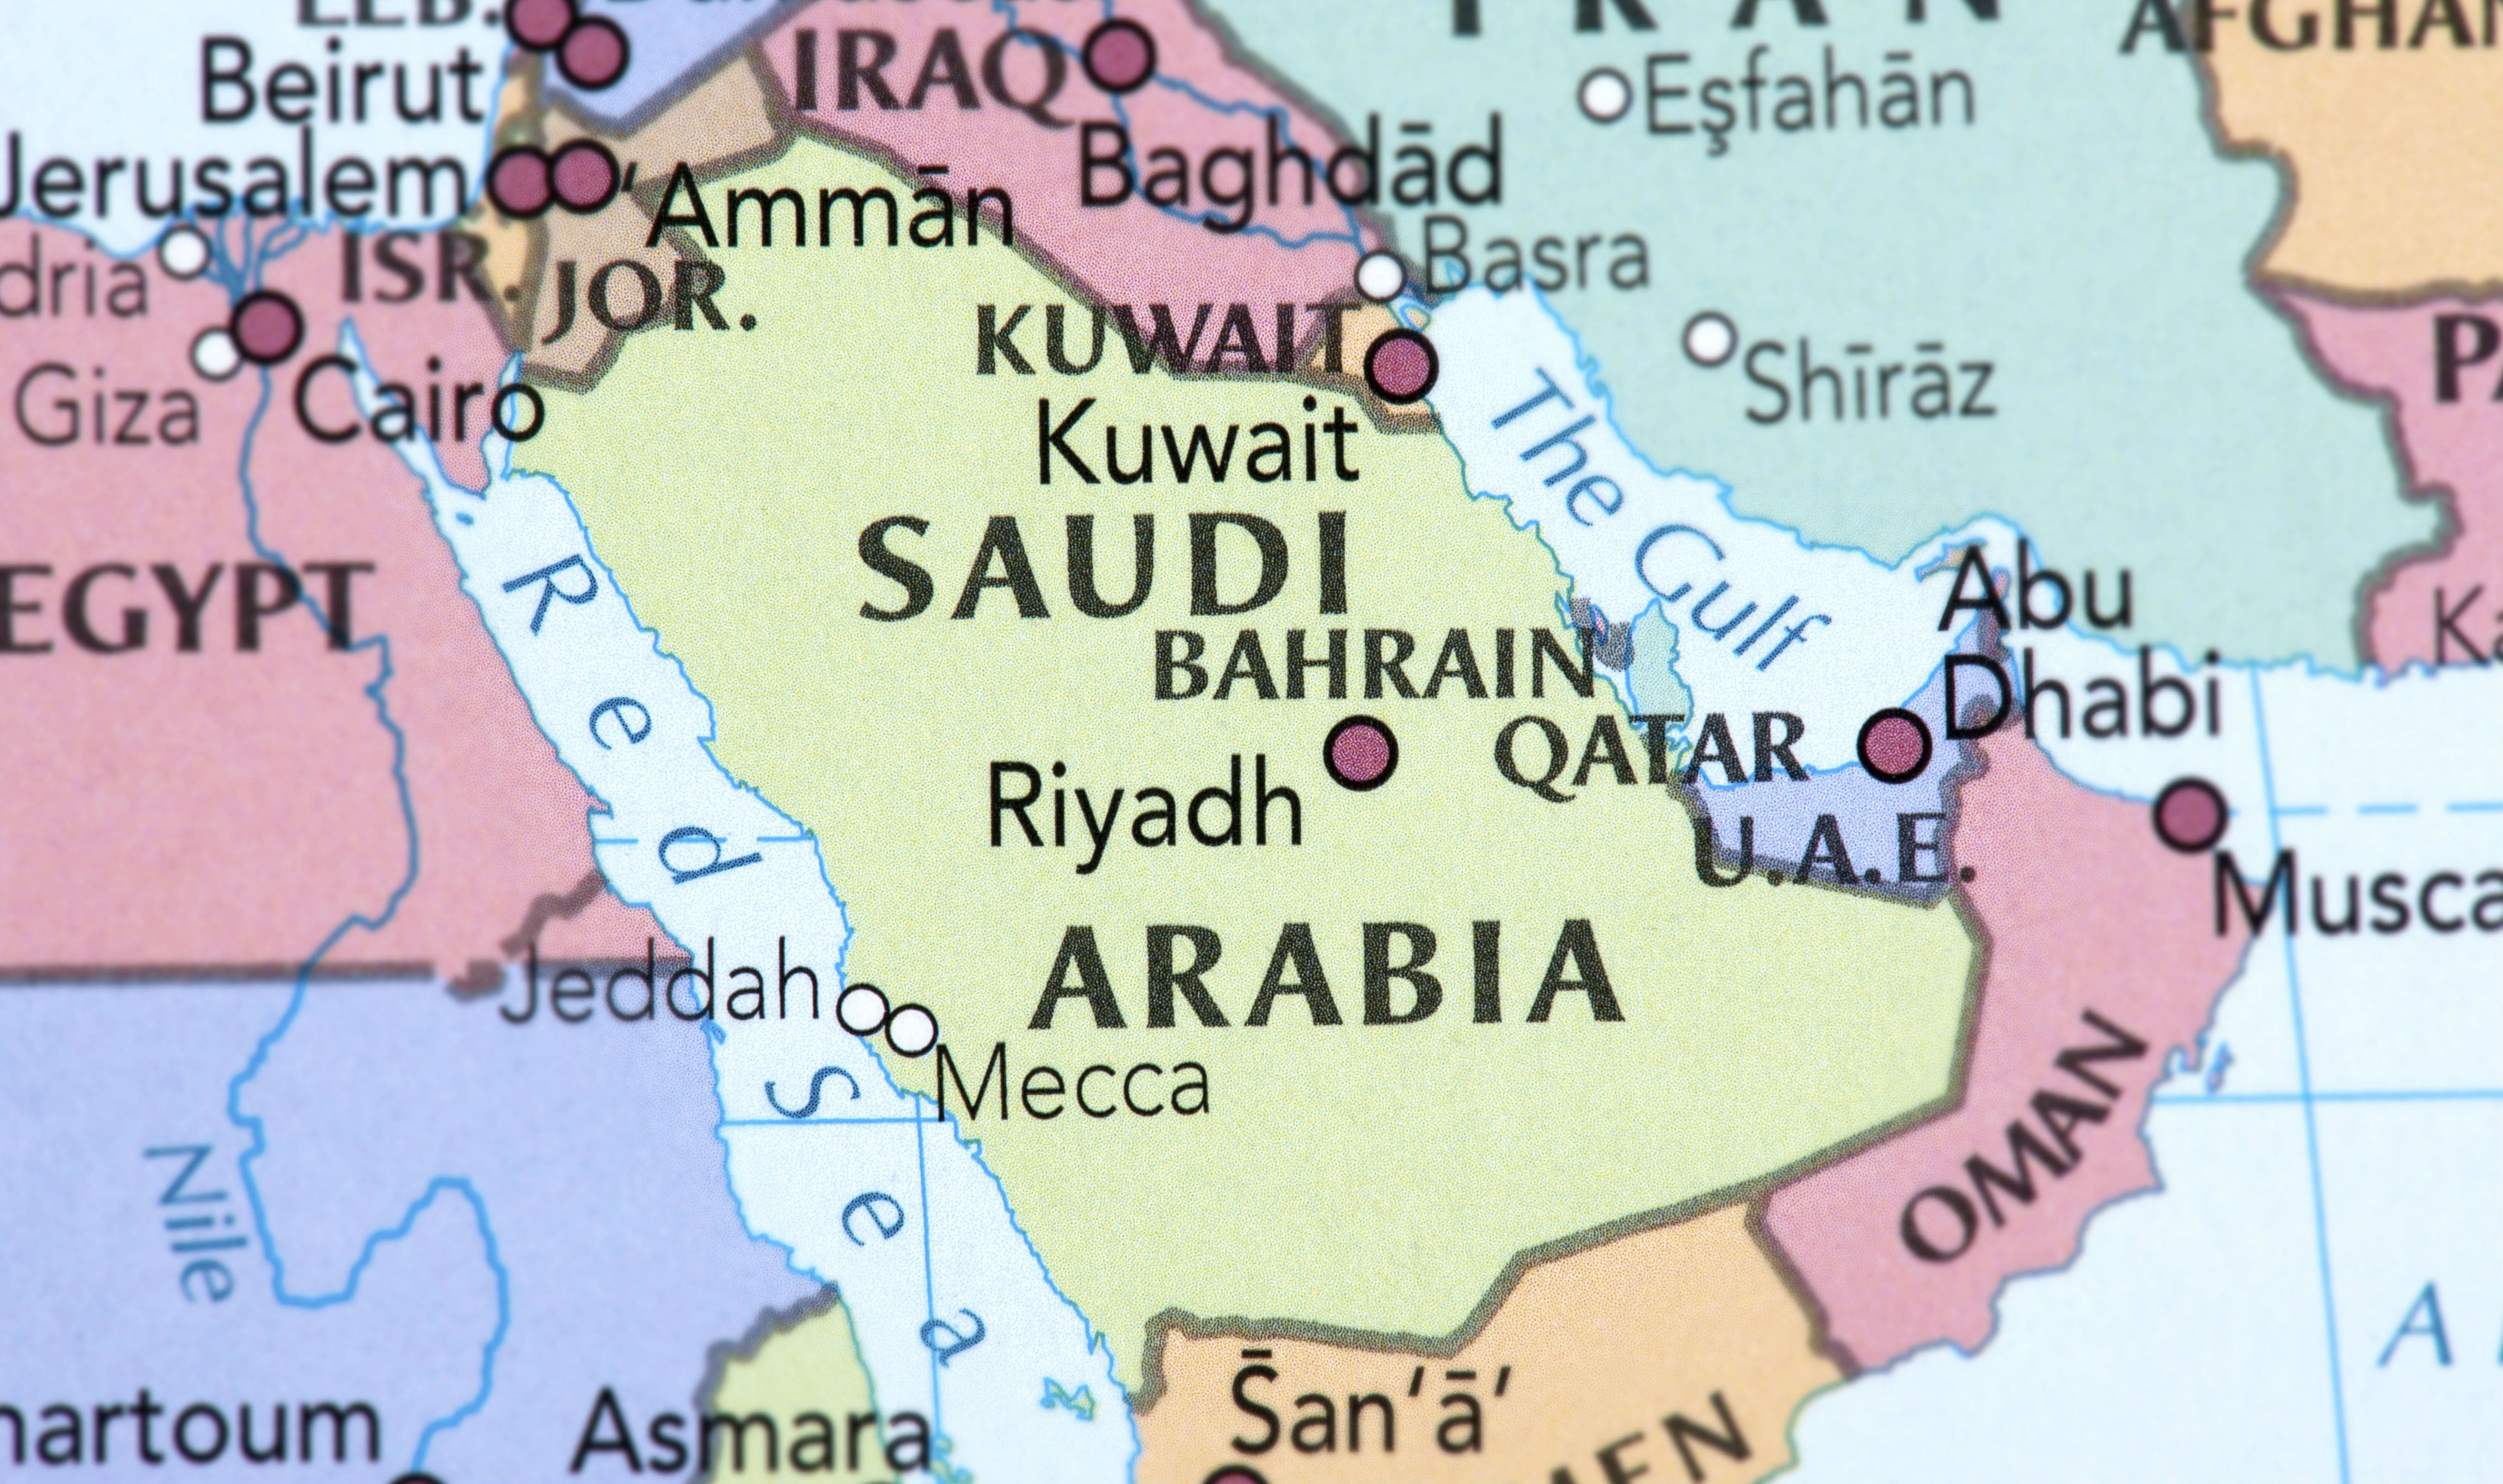 Ten Arab nations join hands with US to counter ISIS in Iraq, Syria